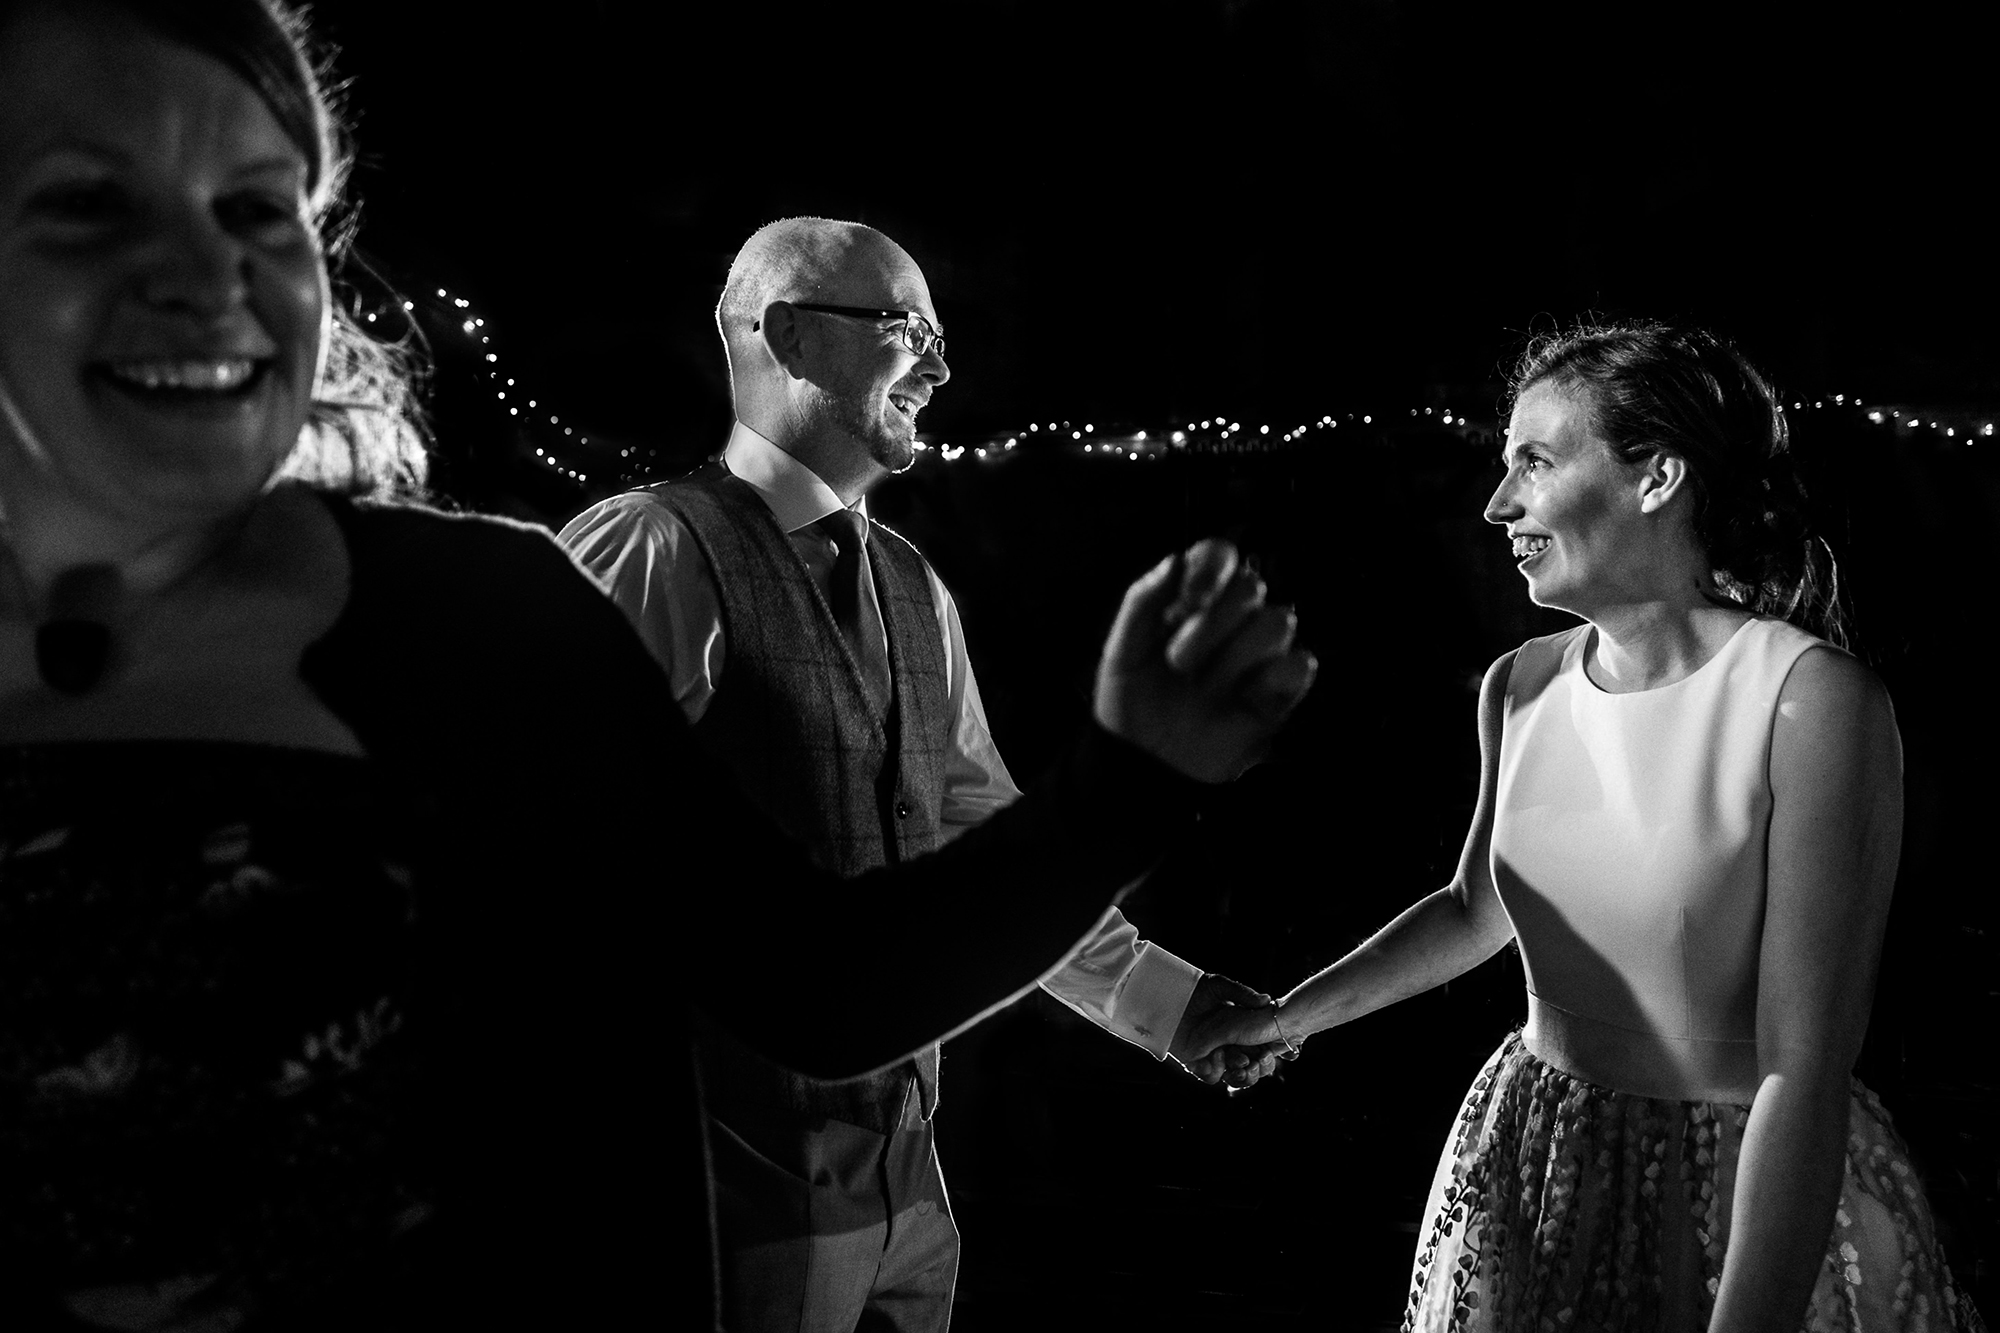 A black and white image of a bride and groom dancing